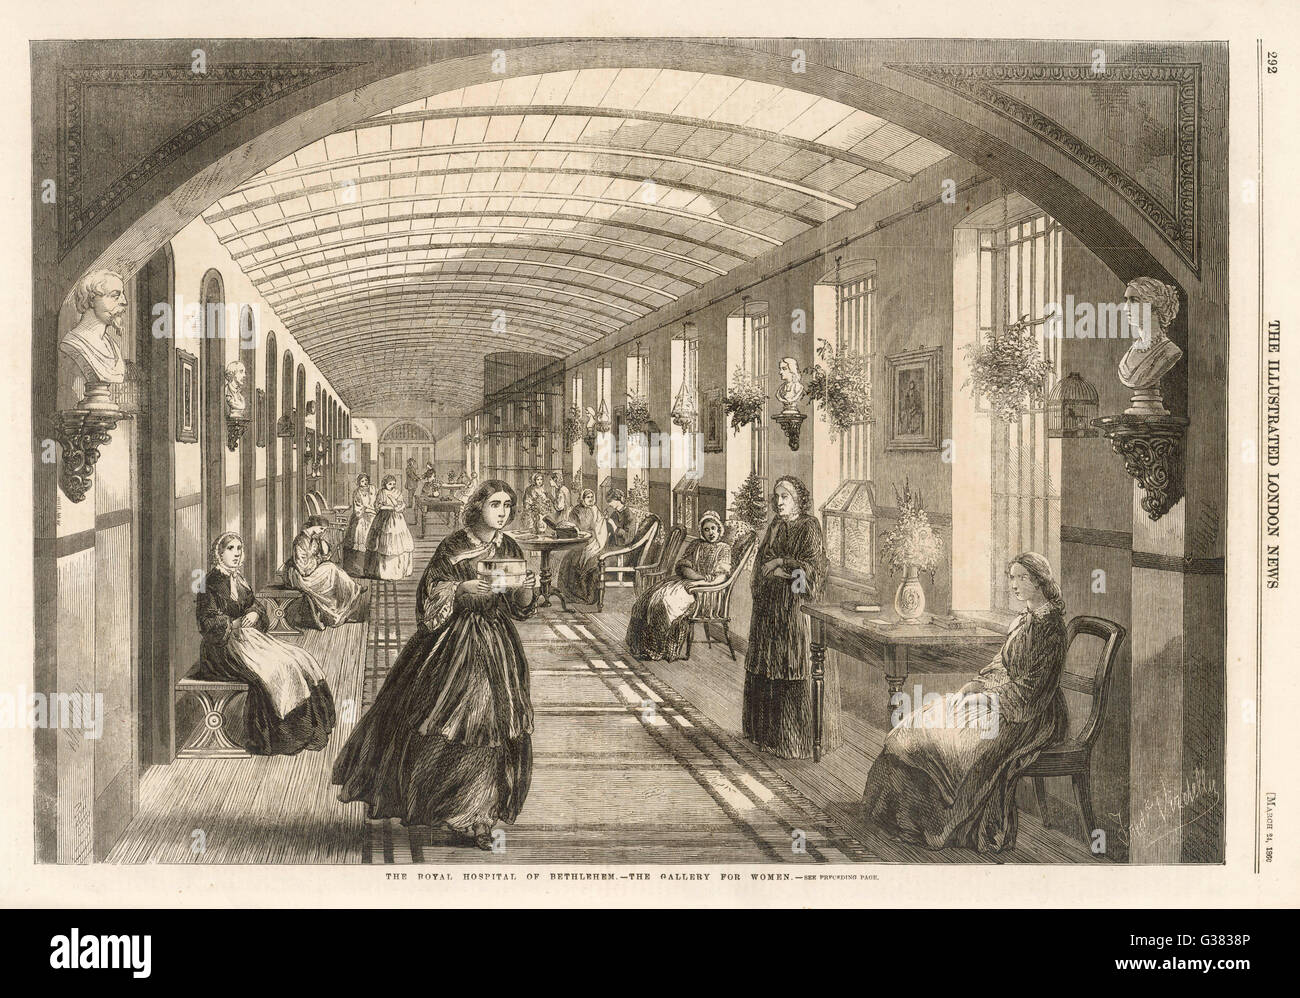 The women's gallery         Date: 1860 - Stock Image